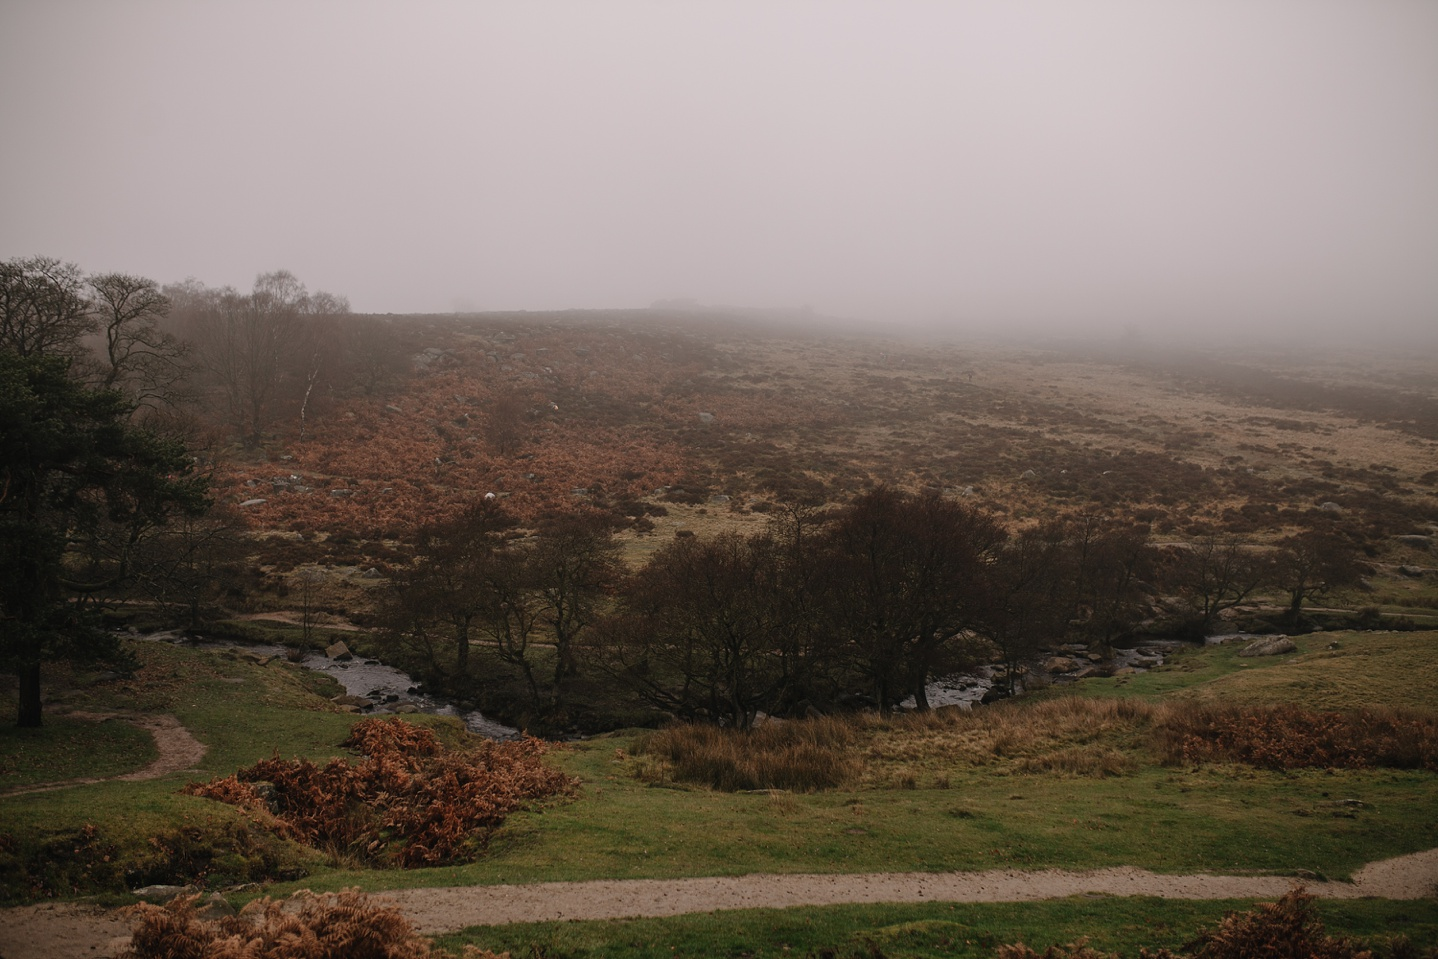 Foggy, autumn landscape of the river at Padley Gorge Sheffield